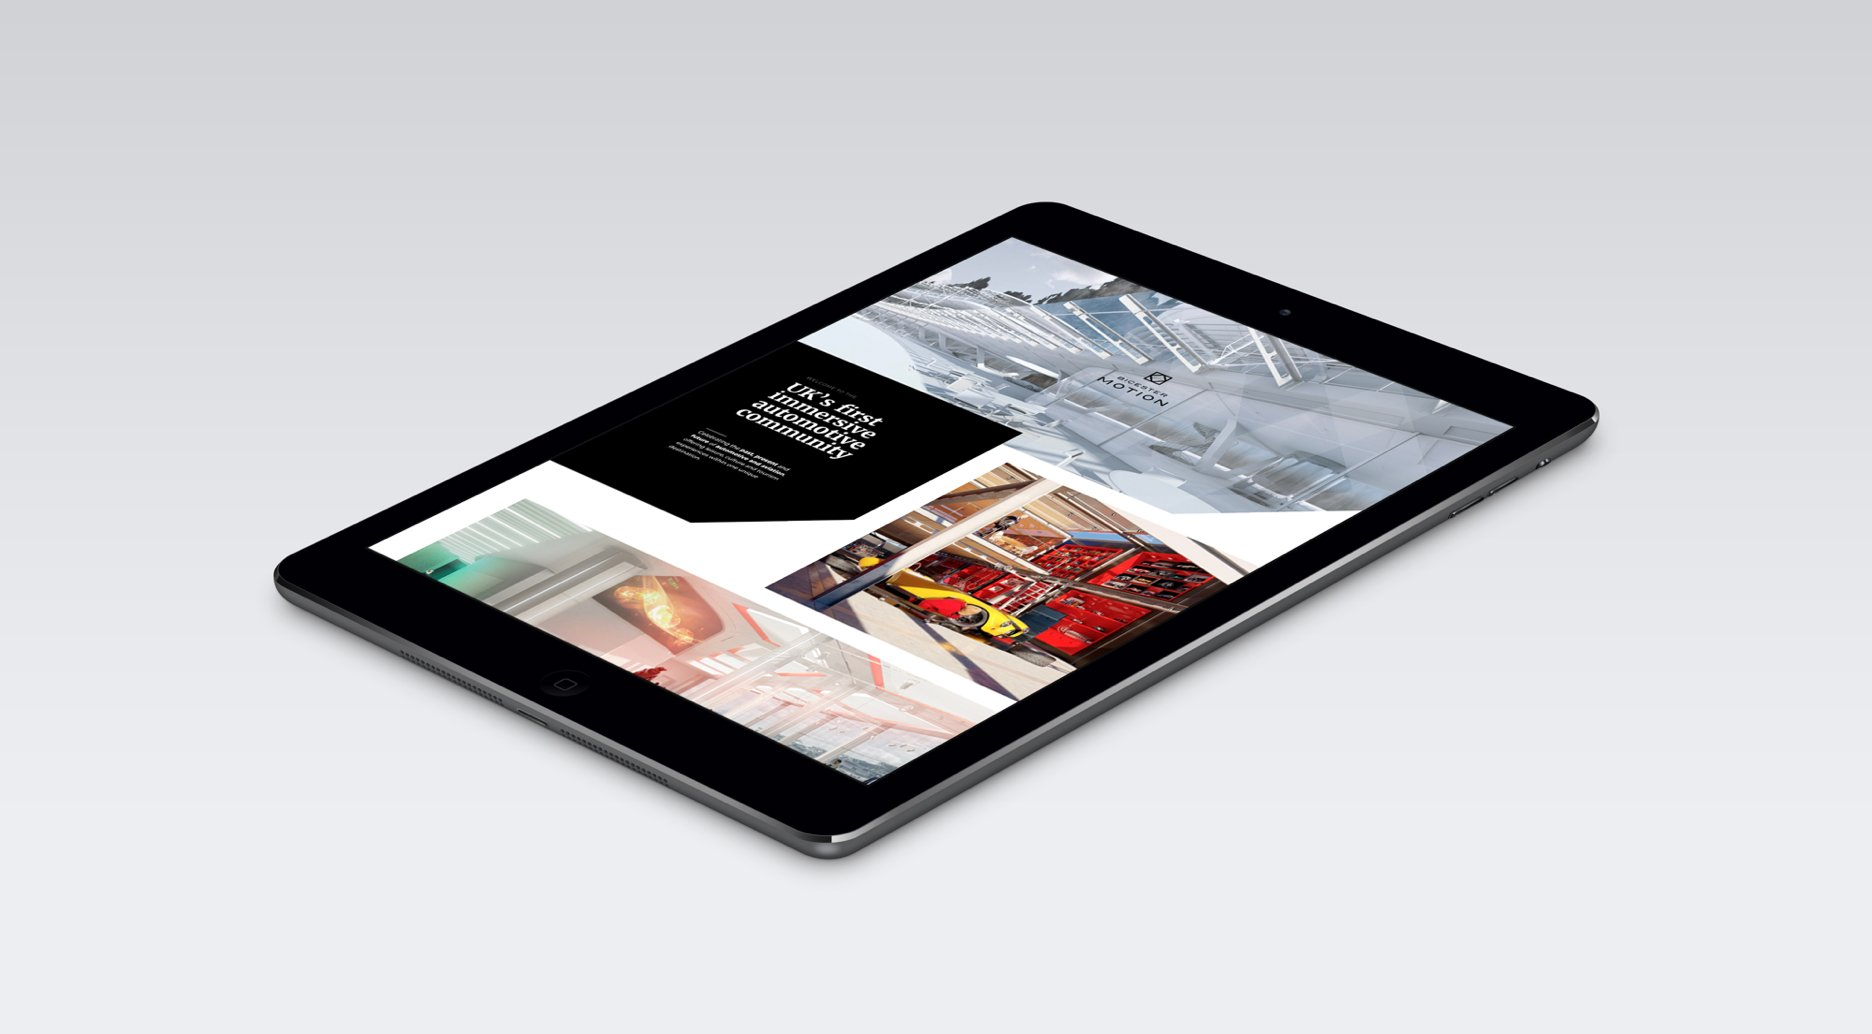 Bicester Motion website displayed on an iPad